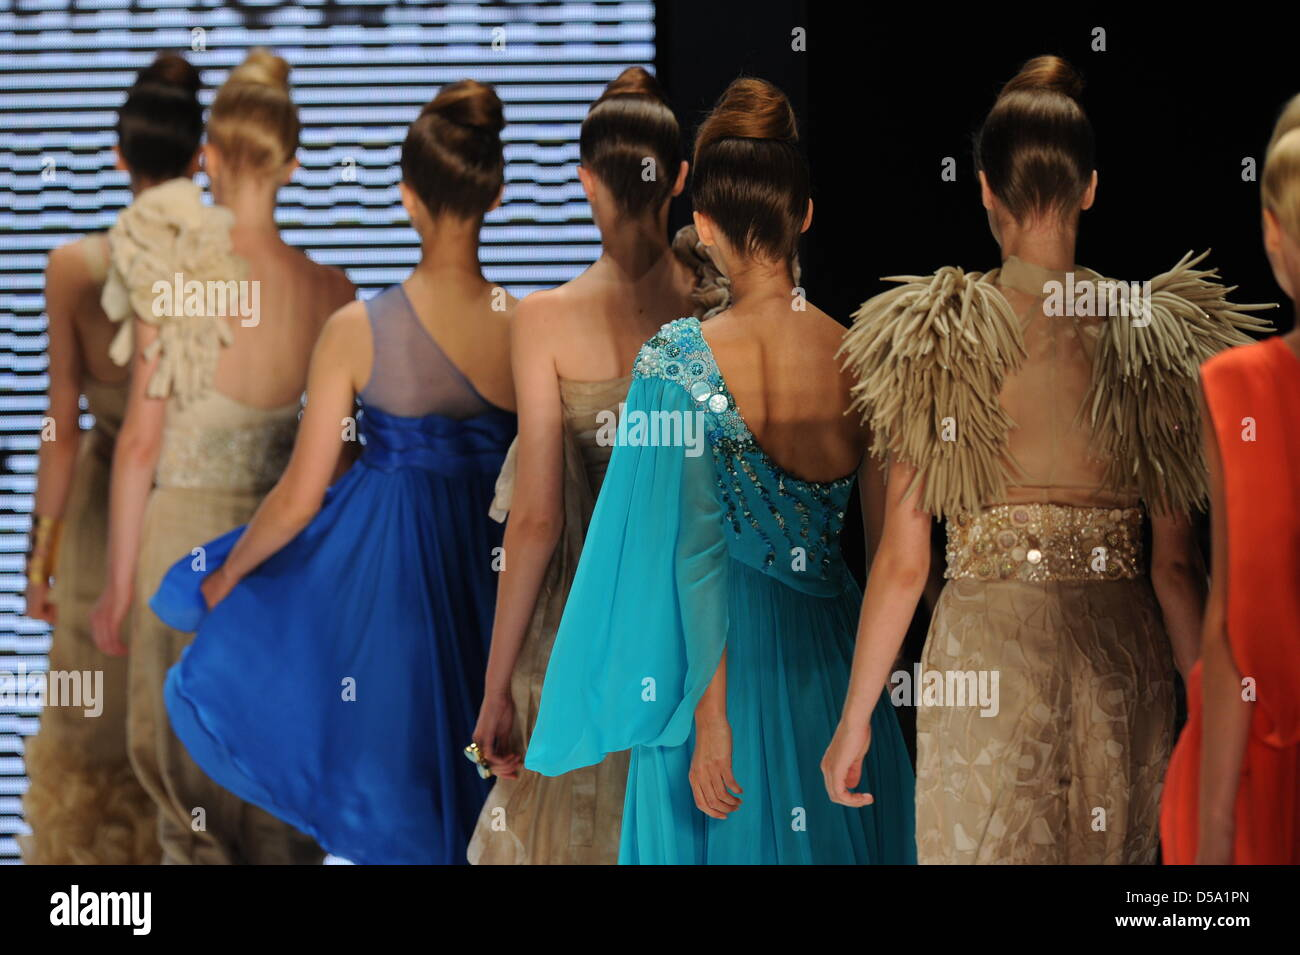 Models Walk For The Show Of The Mexican Label Ji B On The Catwalk Stock Photo Alamy